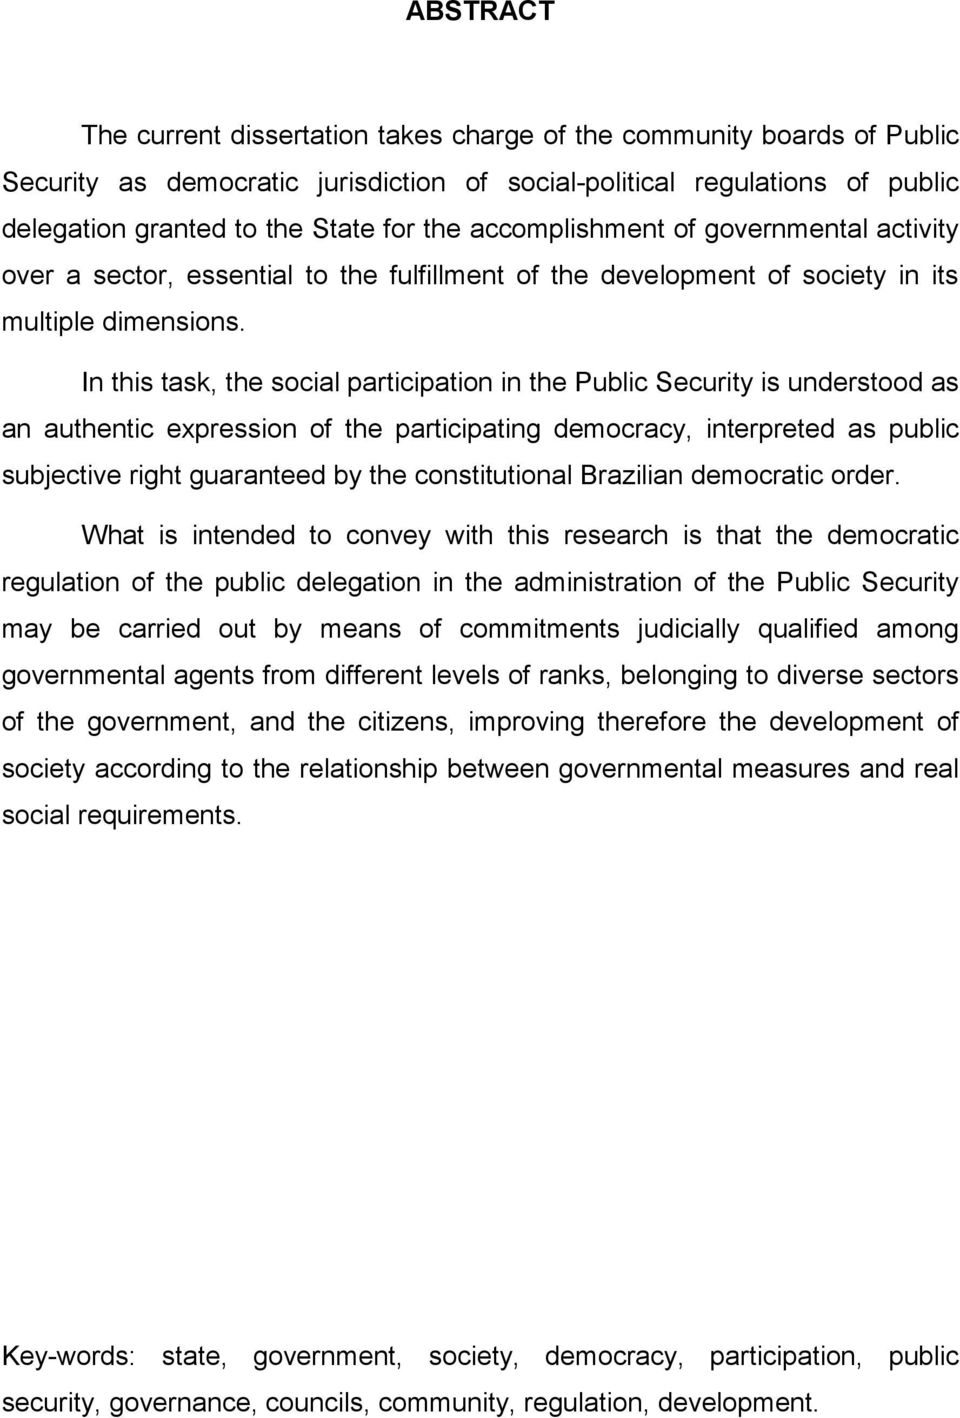 In this task, the social participation in the Public Security is understood as an authentic expression of the participating democracy, interpreted as public subjective right guaranteed by the